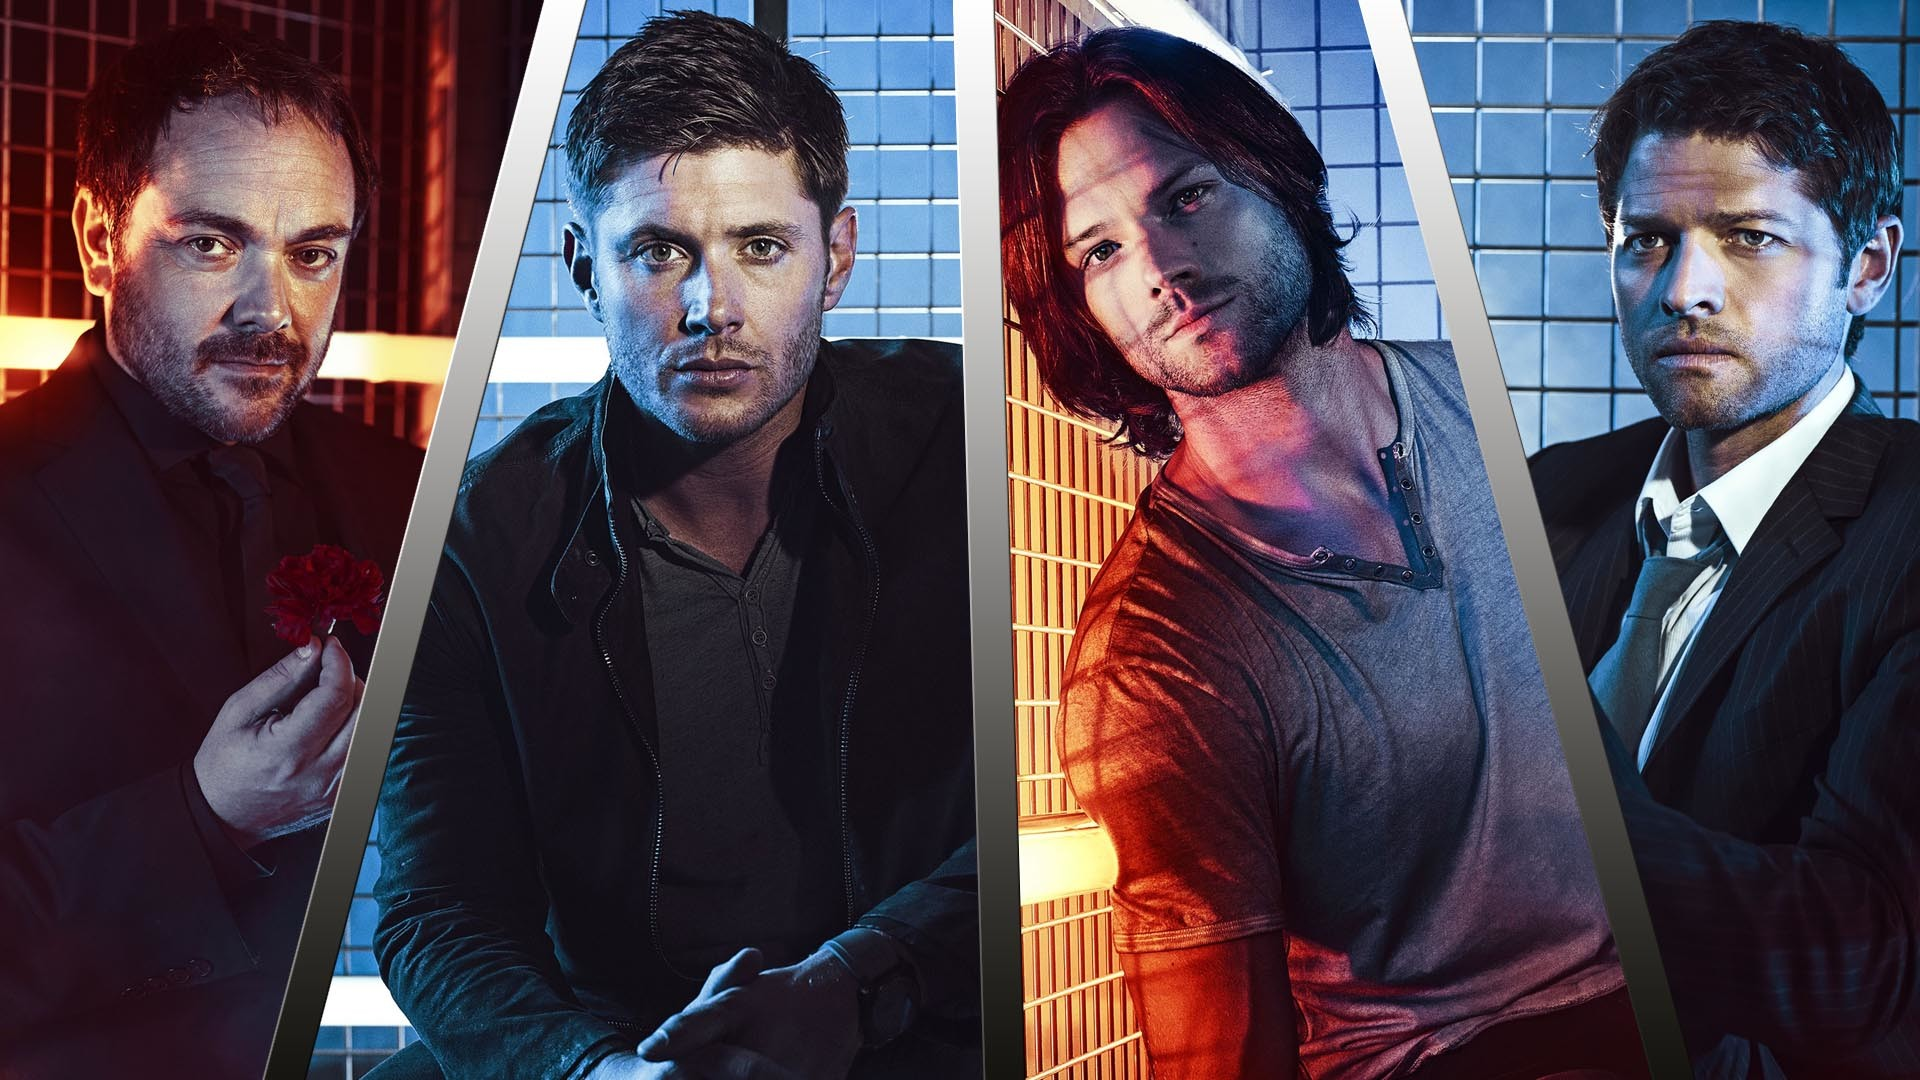 1920x1080 Supernatural Gets Renewed - Will Season 13 Be Unlucky For the Boys? - PopHorror